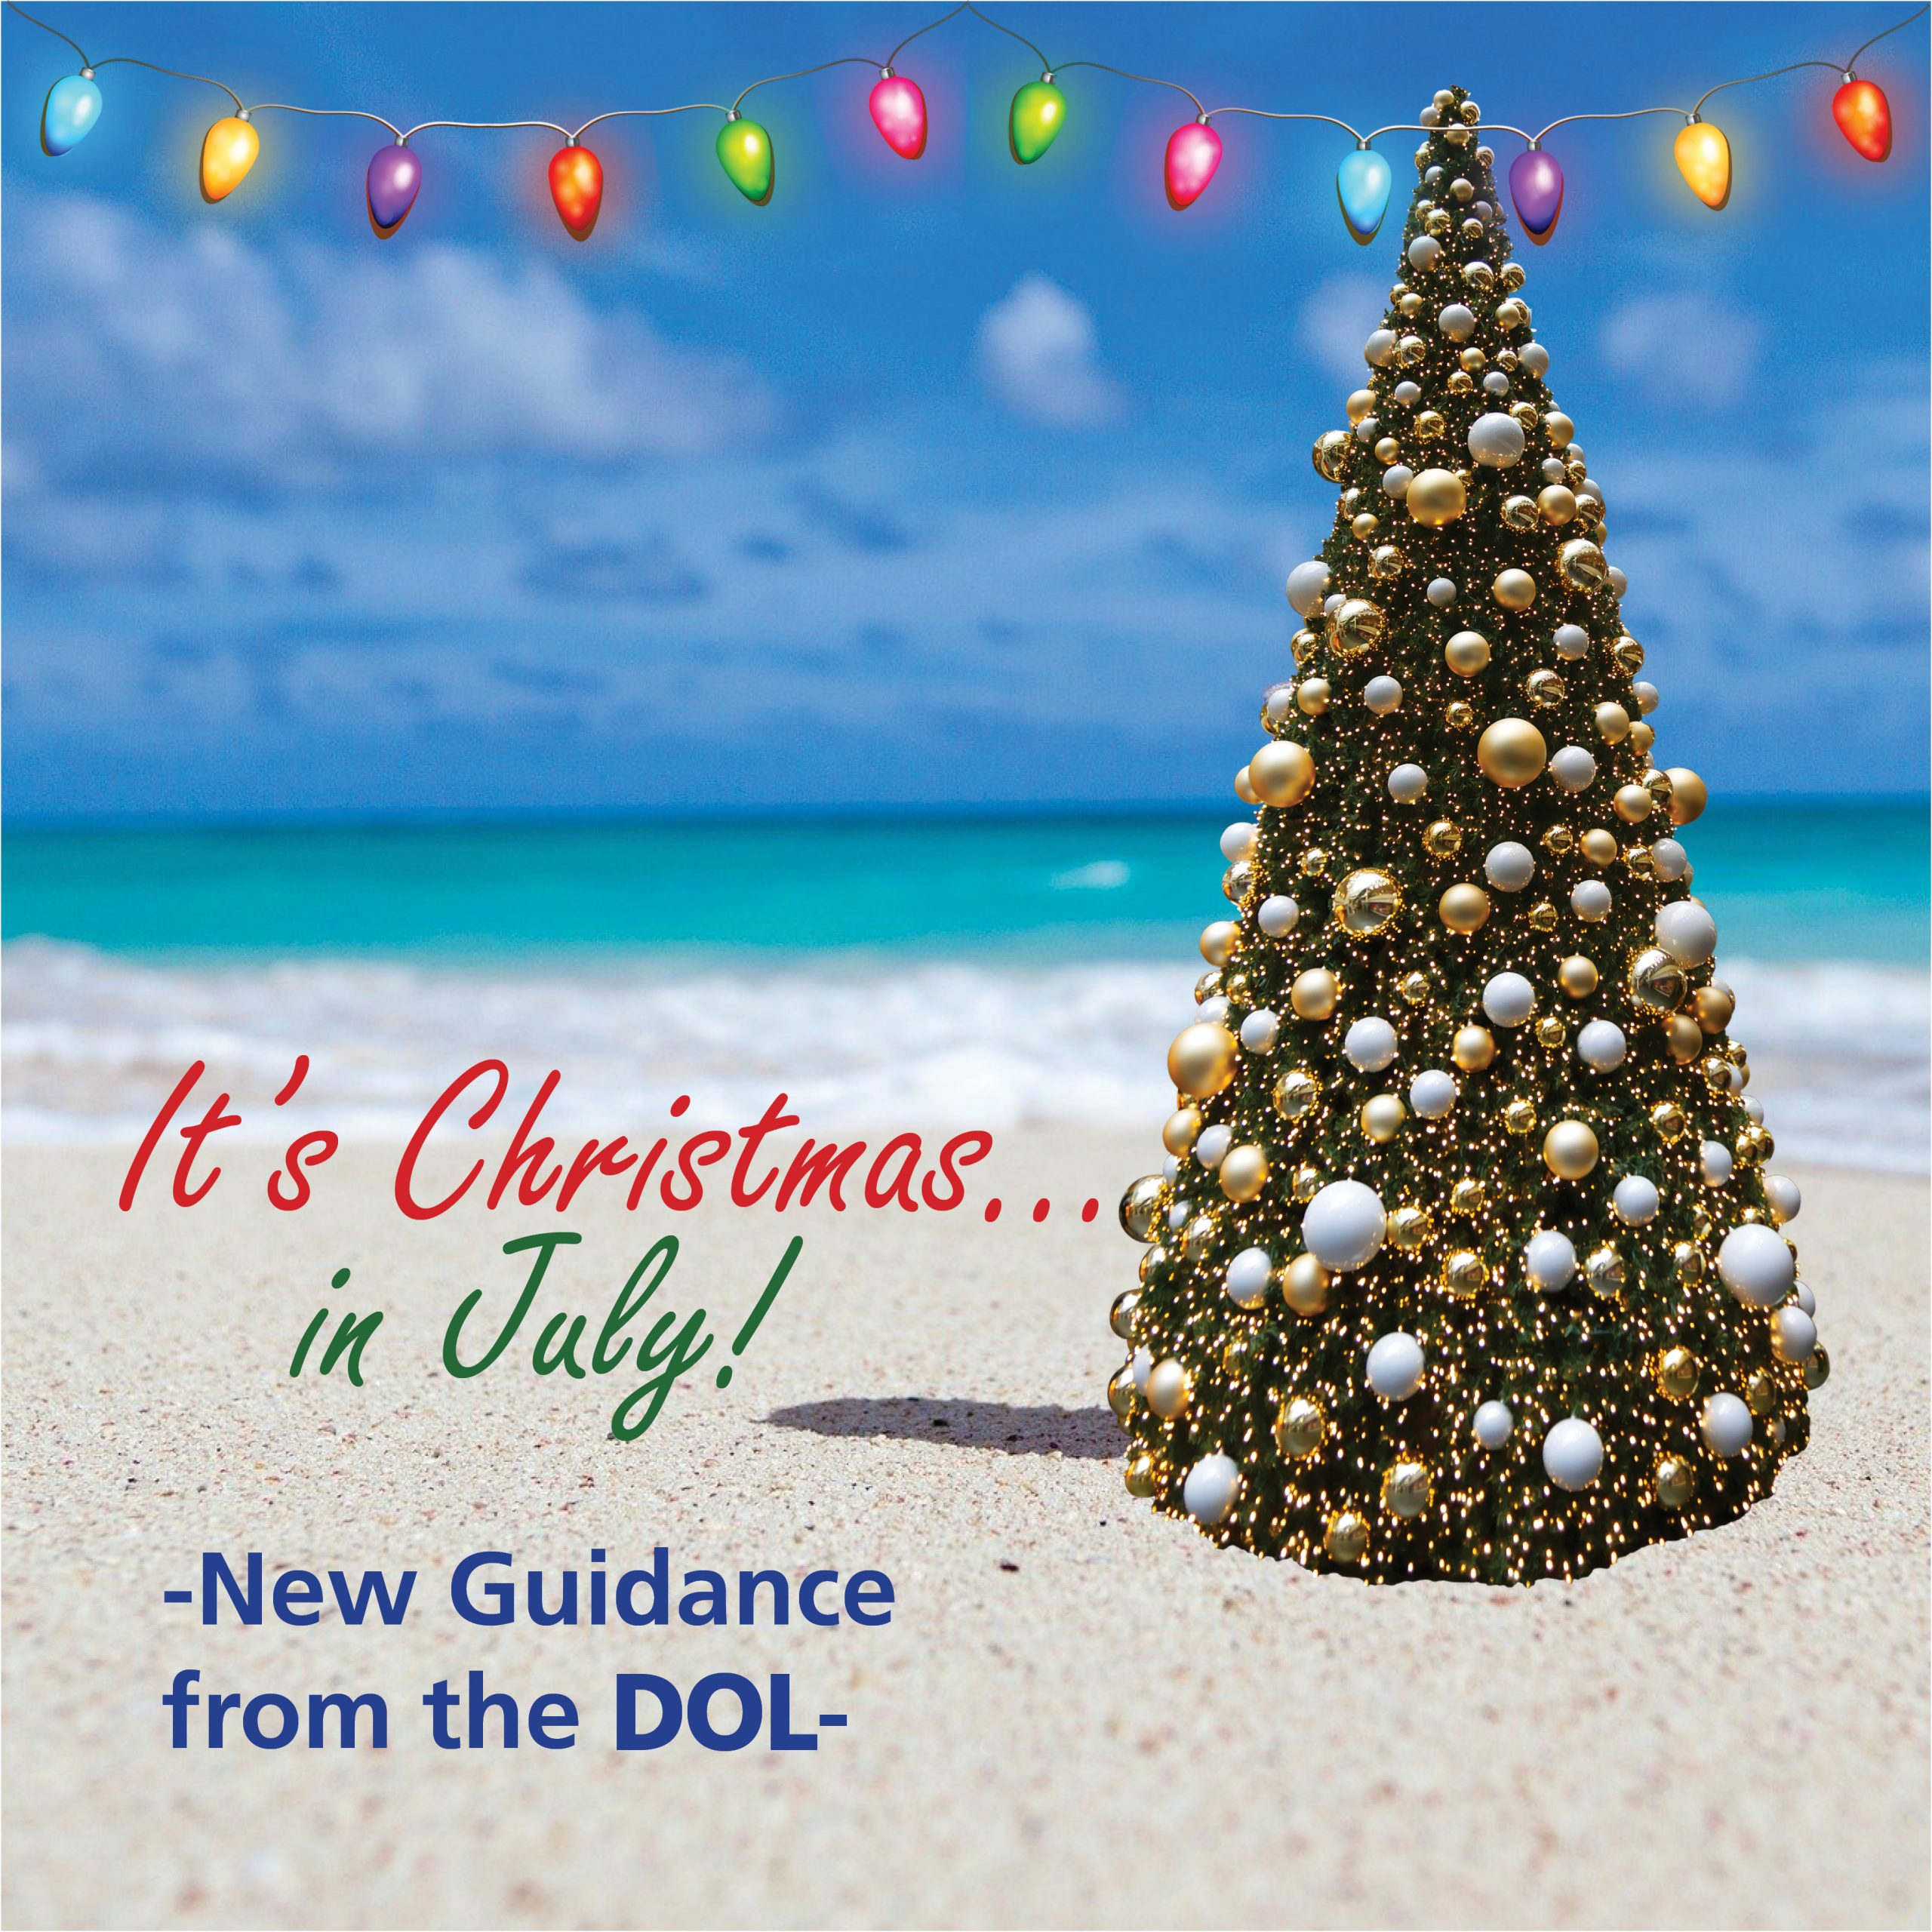 Its Christmas 2020 Pics It's Christmas In July! New Guidance from the DOL   Graydon Law